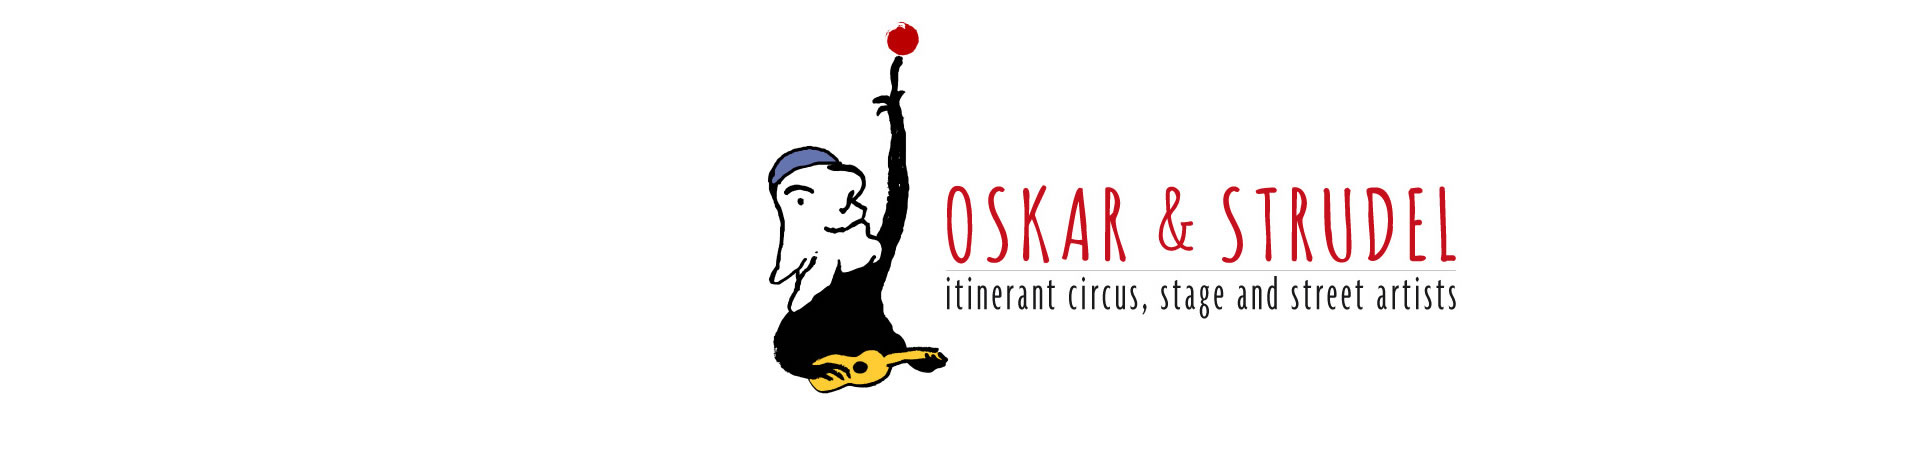 Oskar &  Strudel, Itinerant circus, stage and street artists